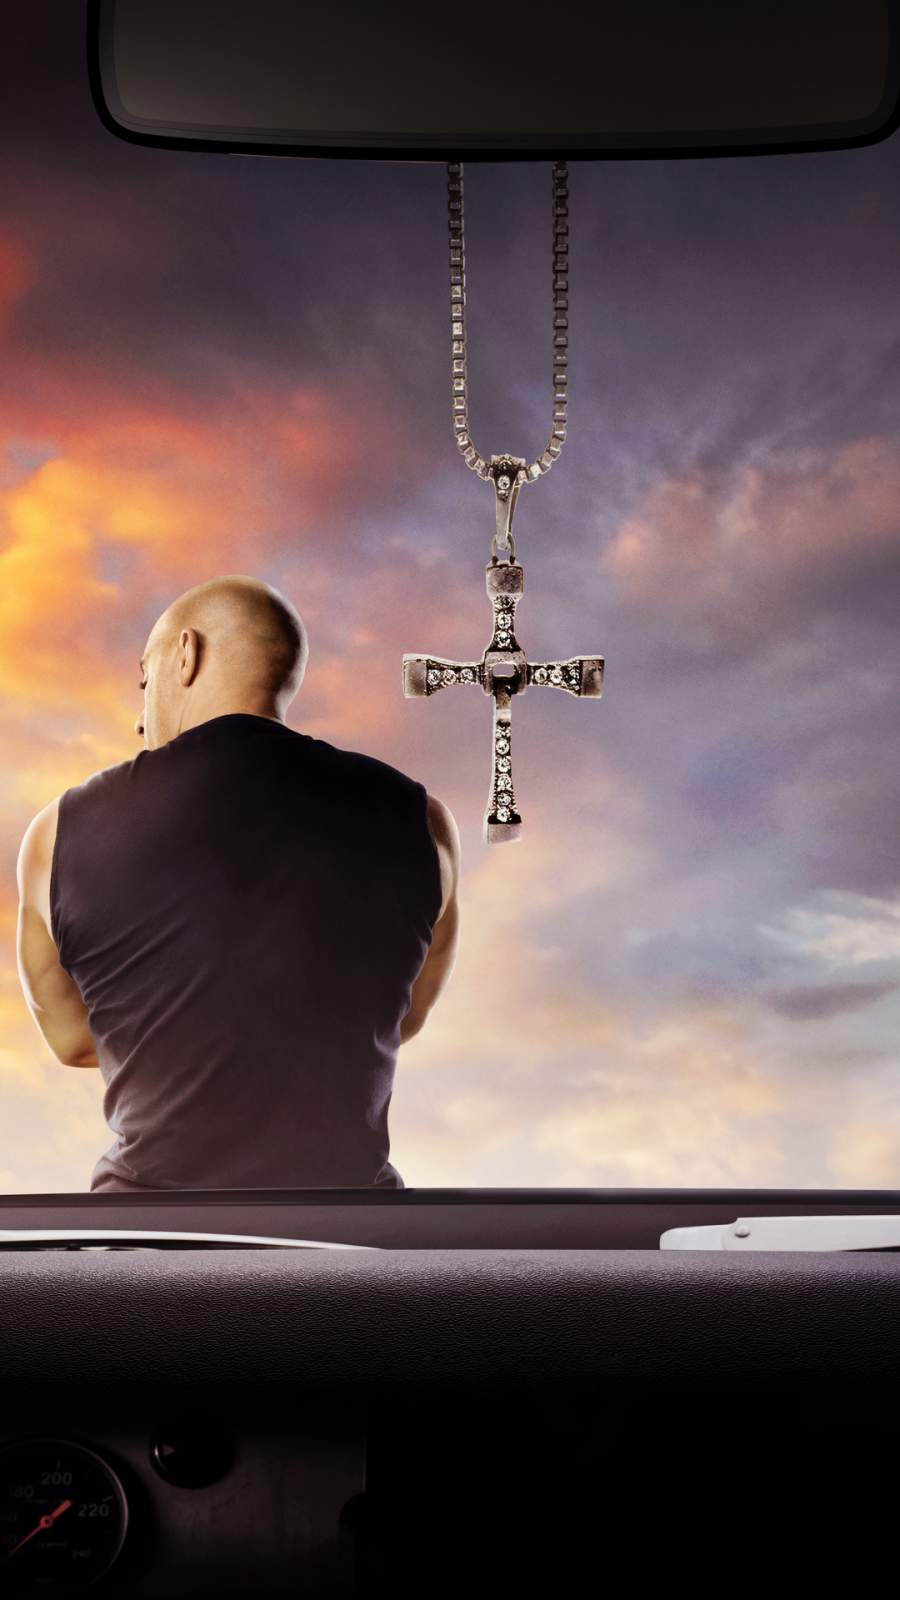 Vin Diesel Fast and Furious 9 iPhone Wallpaper 1